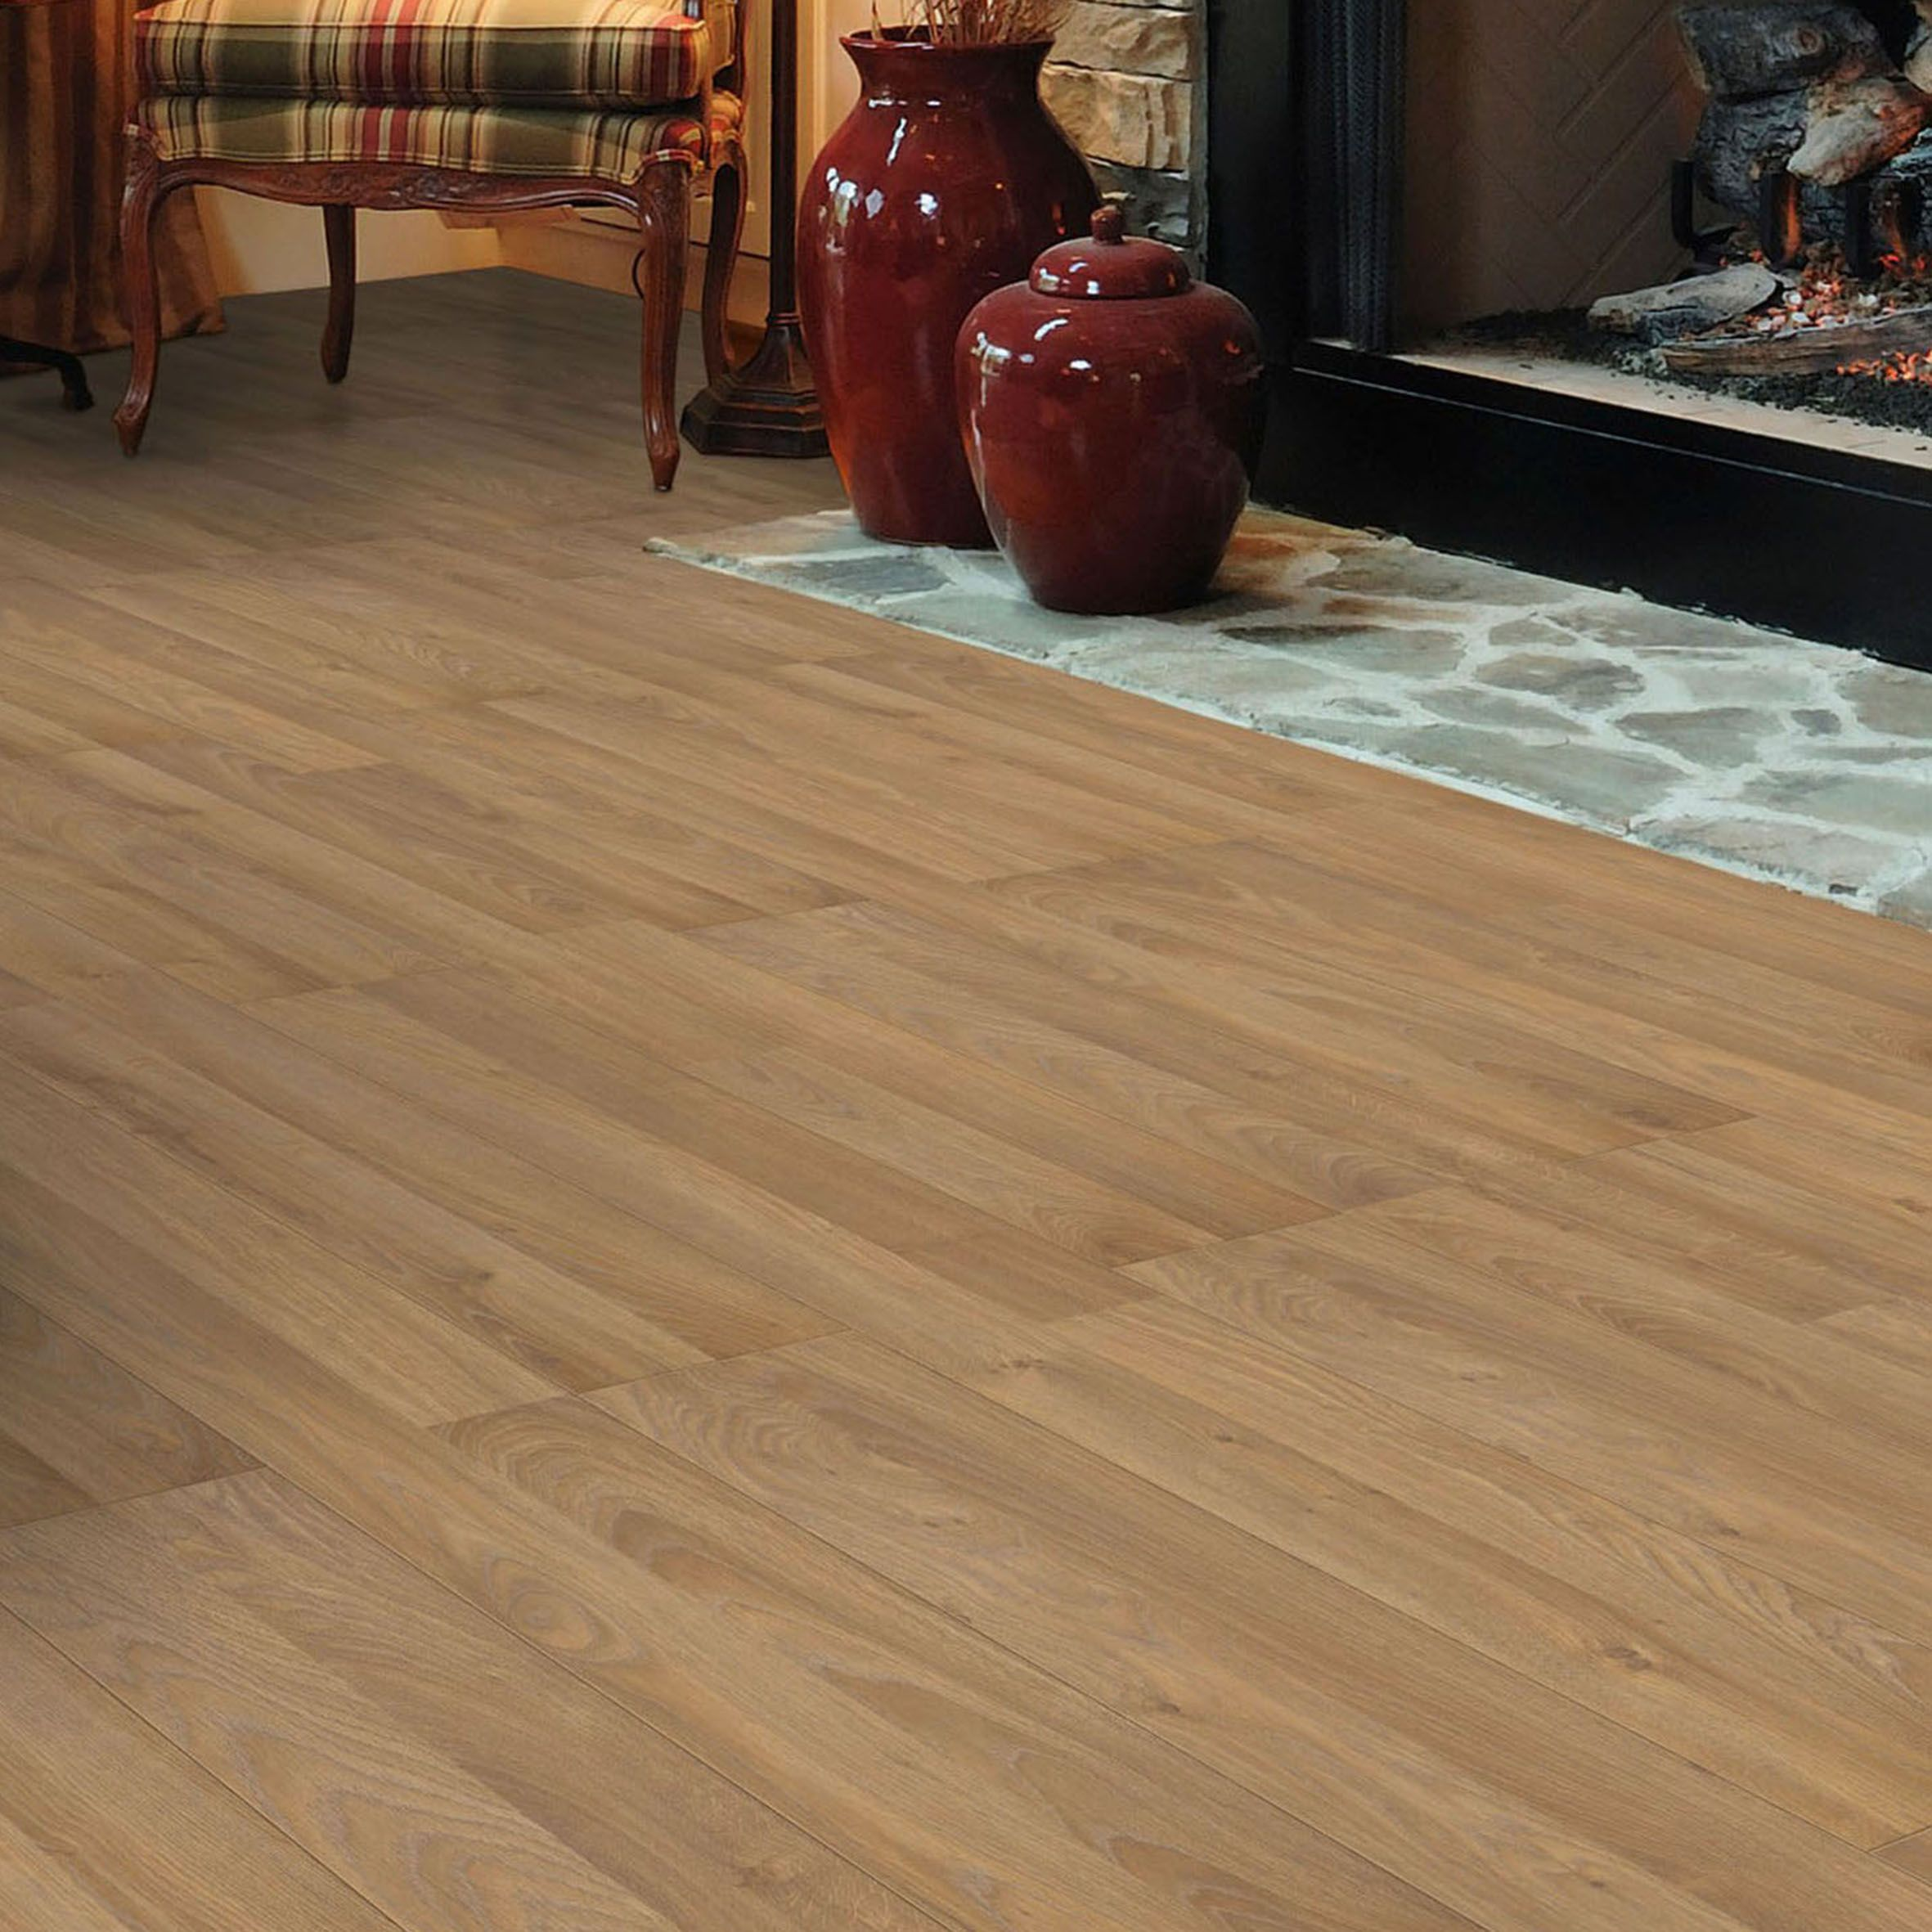 Golden oak effect laminate flooring sample departments for Diy laminate flooring